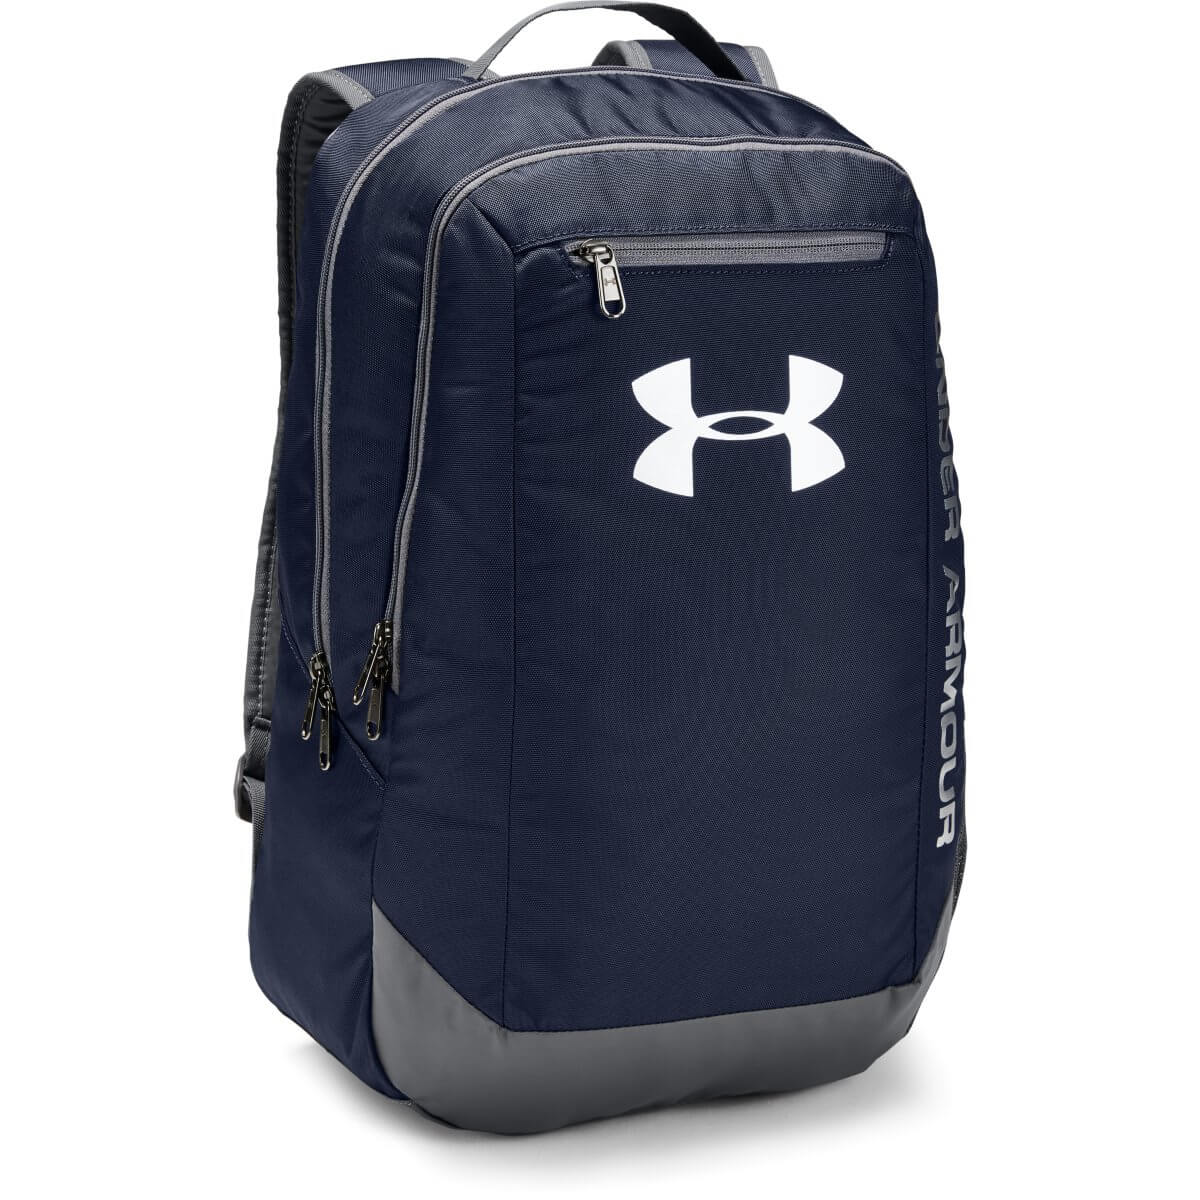 Hustle Backpack LDWR Navy - Under Armour - Navy